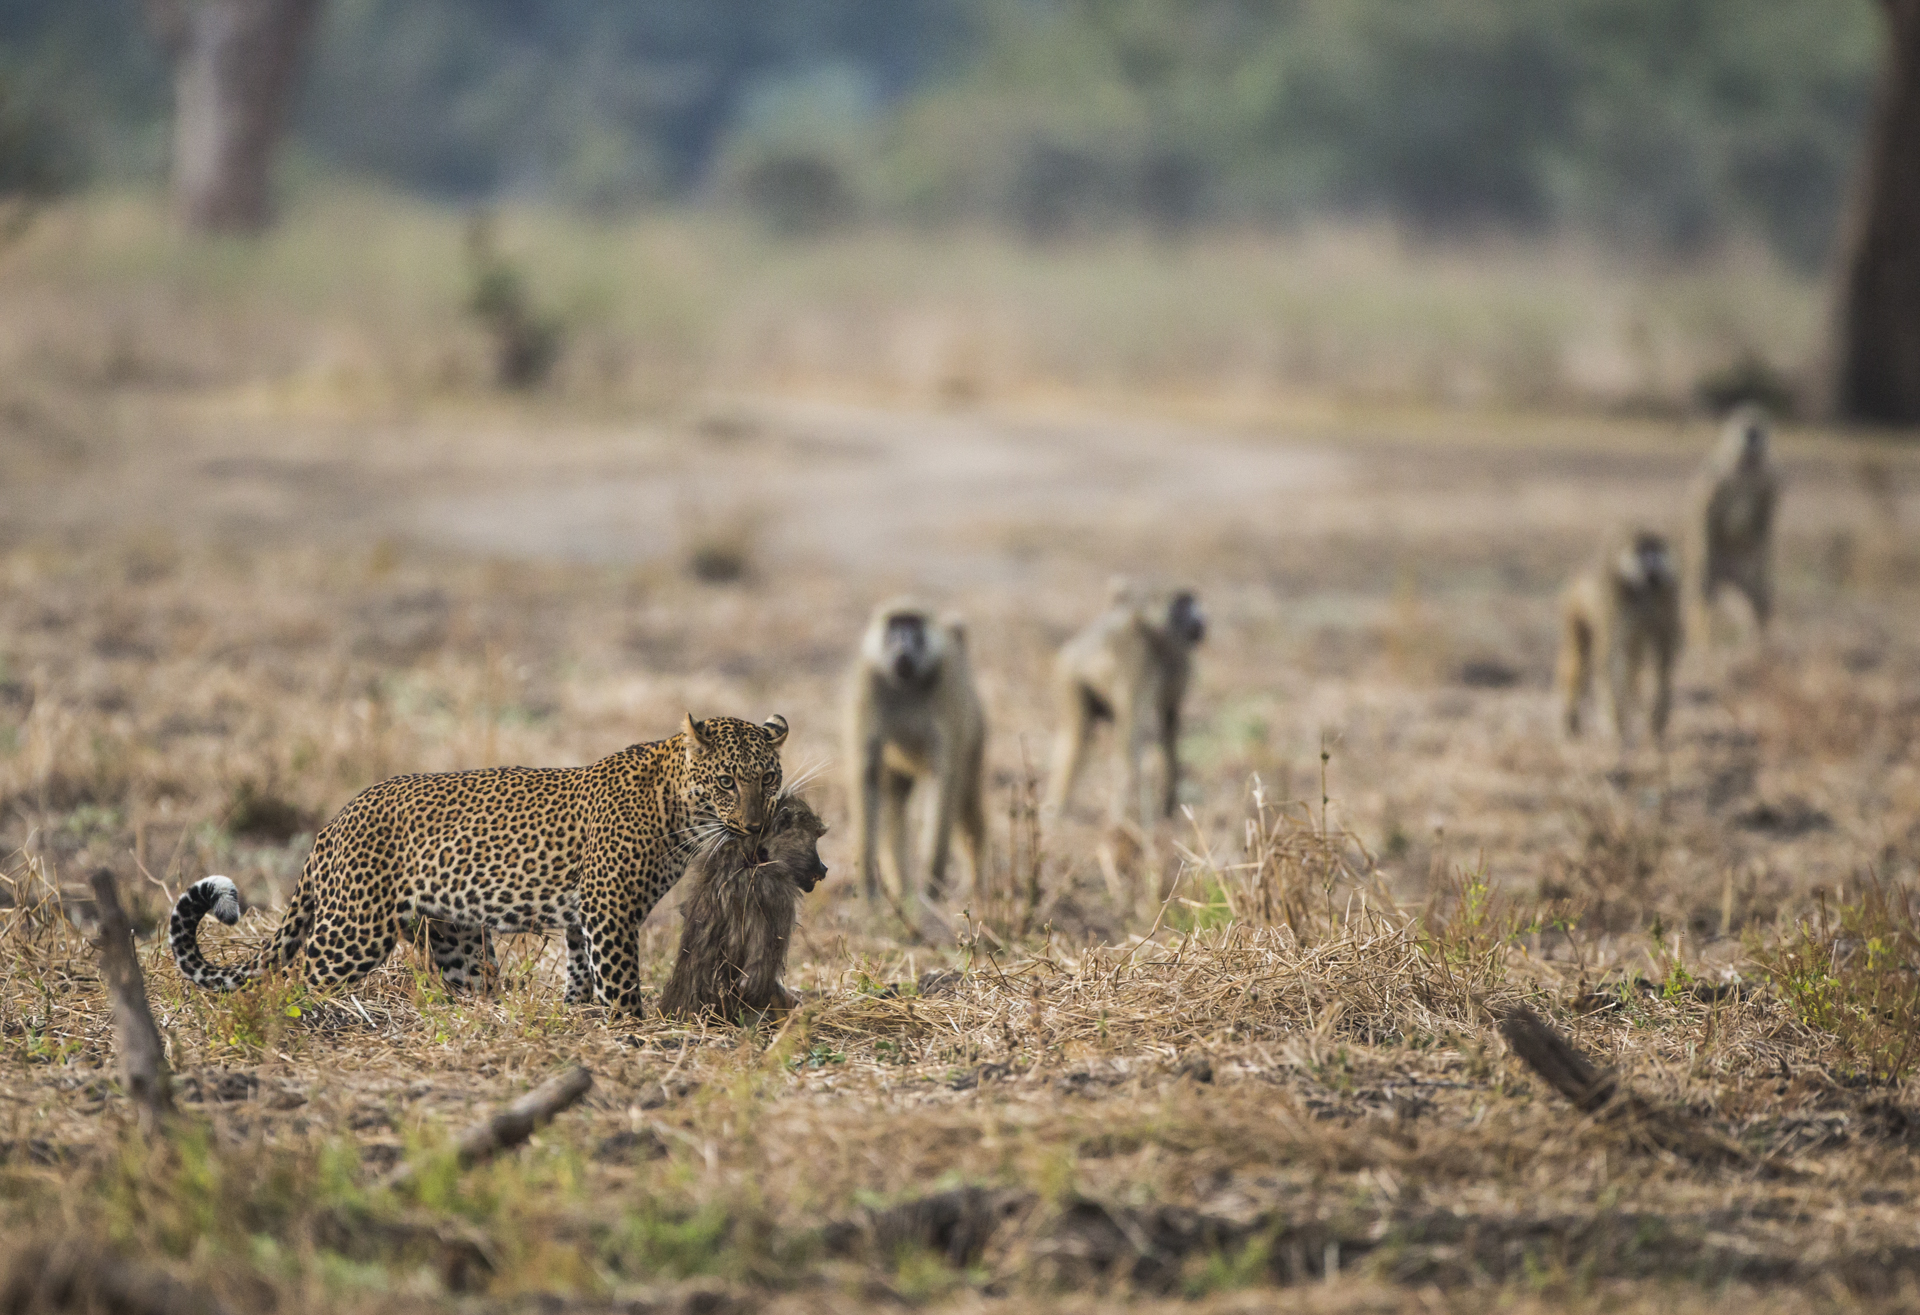 Baboons provide a good meal but fighting off the rest of the troop can carry risks.